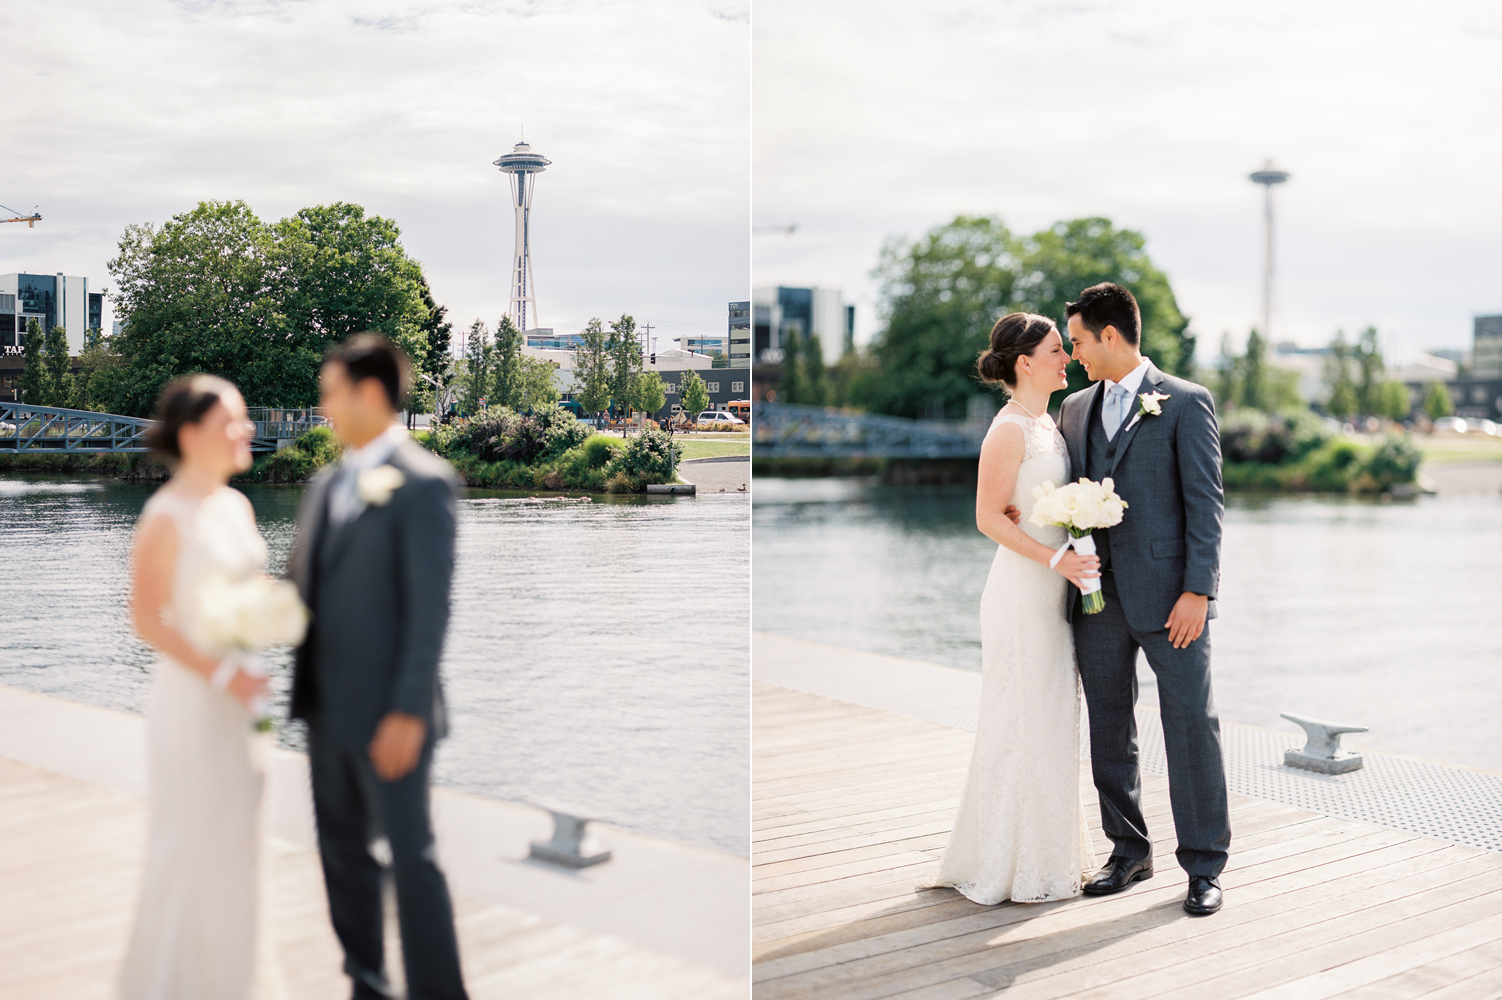 Seattle Museum of History and Industry Wedding Photography